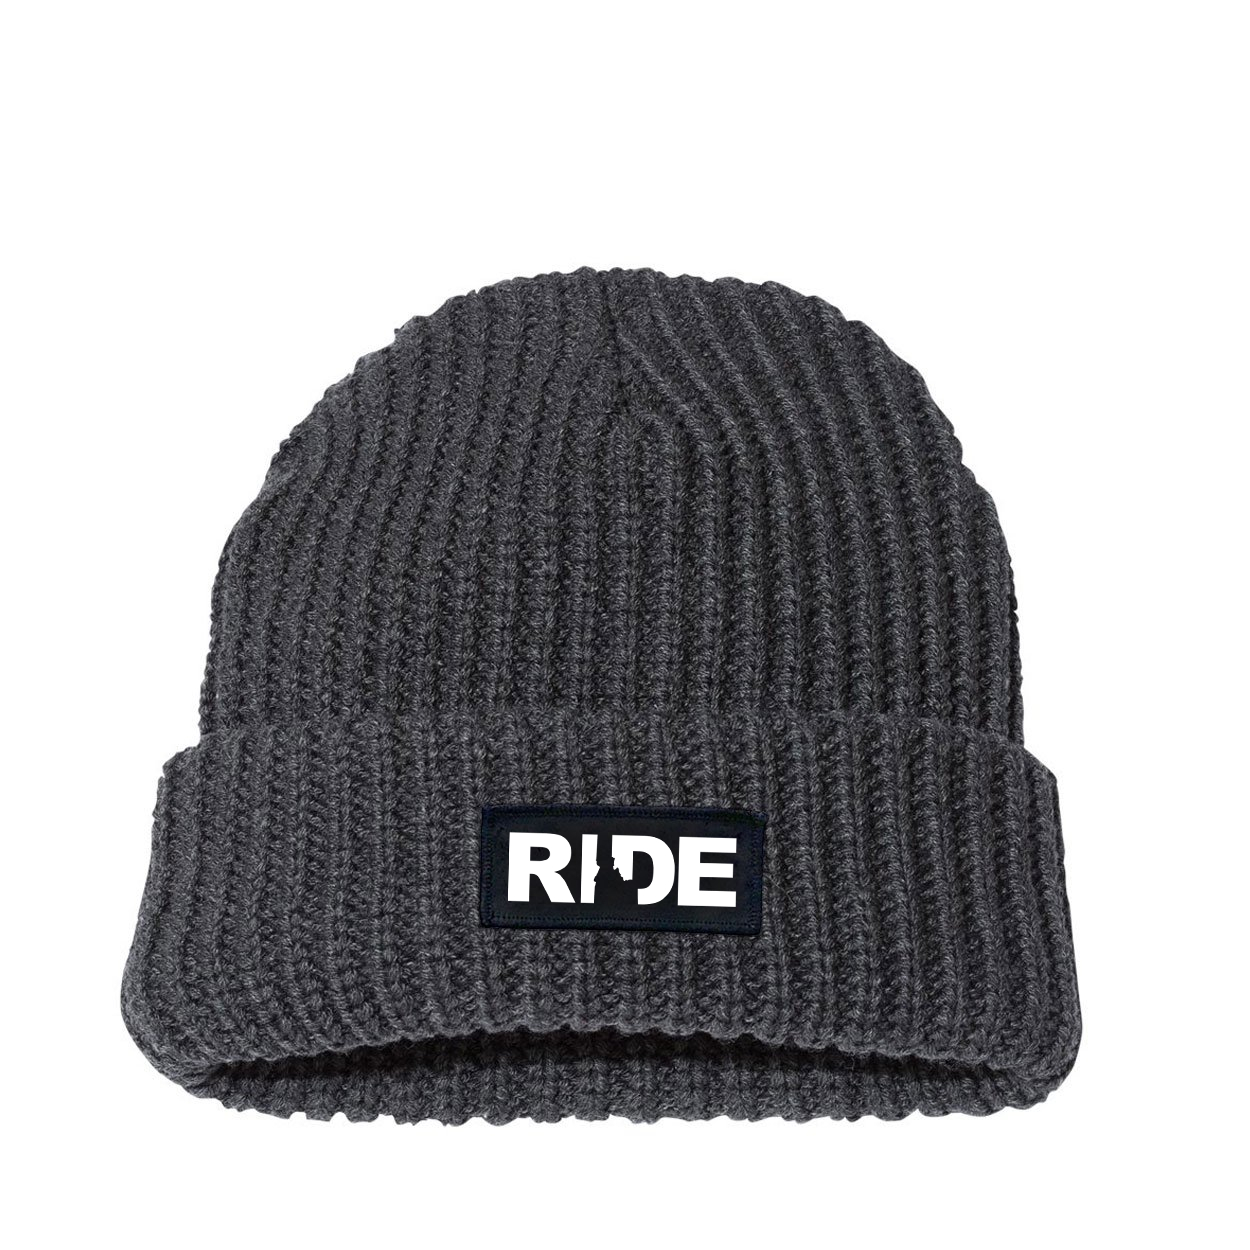 Ride Idaho Night Out Woven Patch Roll Up Jumbo Chunky Knit Beanie Charcoal (White Logo)